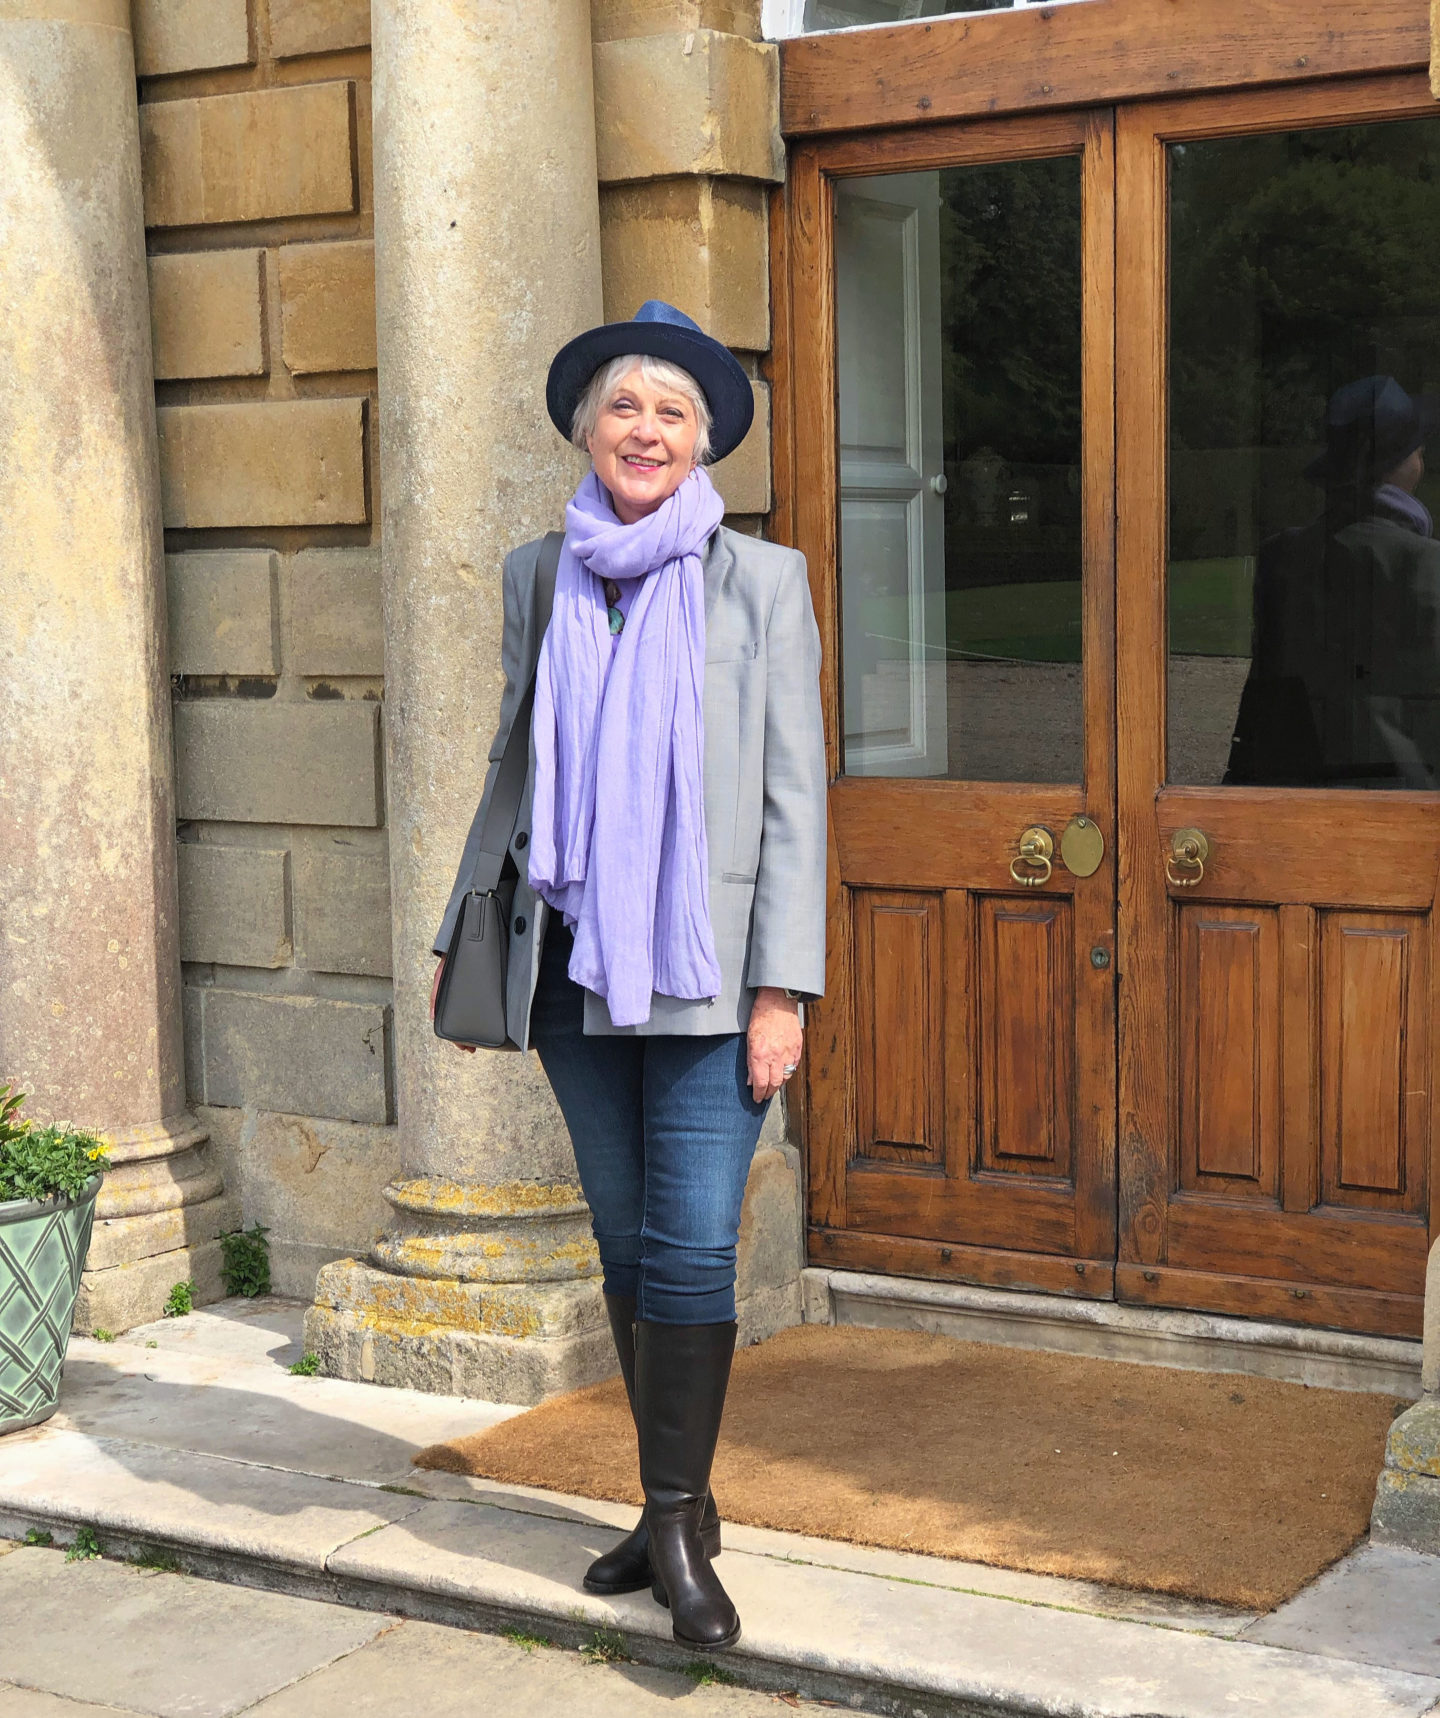 Lilac scarf, jeans, check jacket